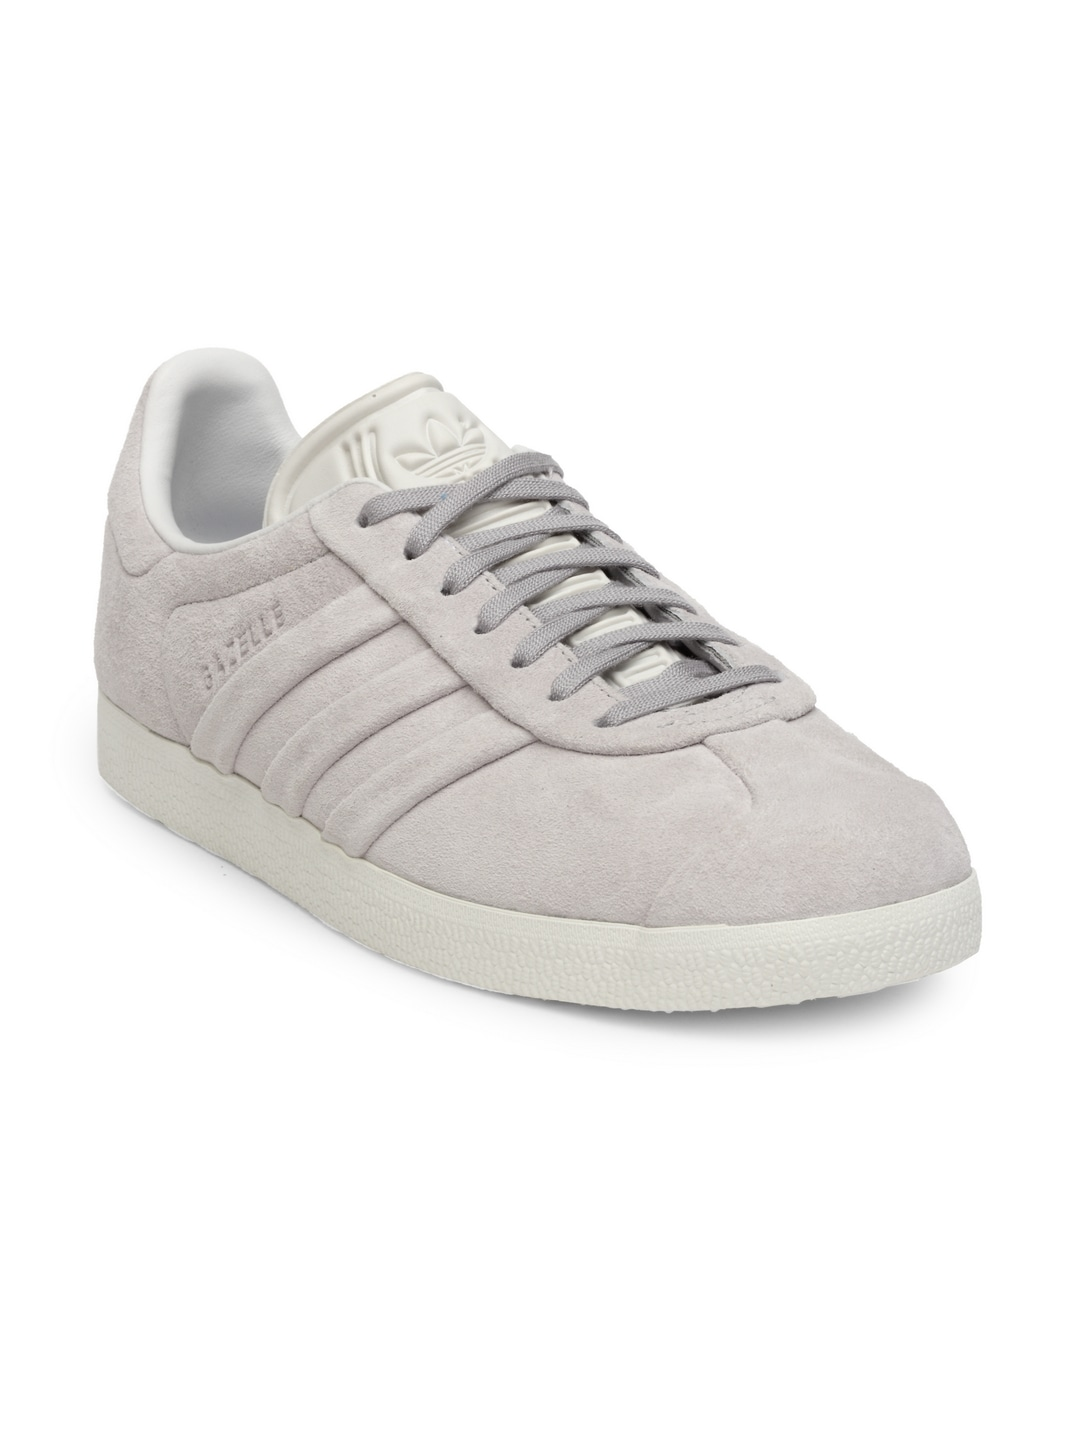 Women s Adidas Shoes - Buy Adidas Shoes for Women Online in India 9e9888332